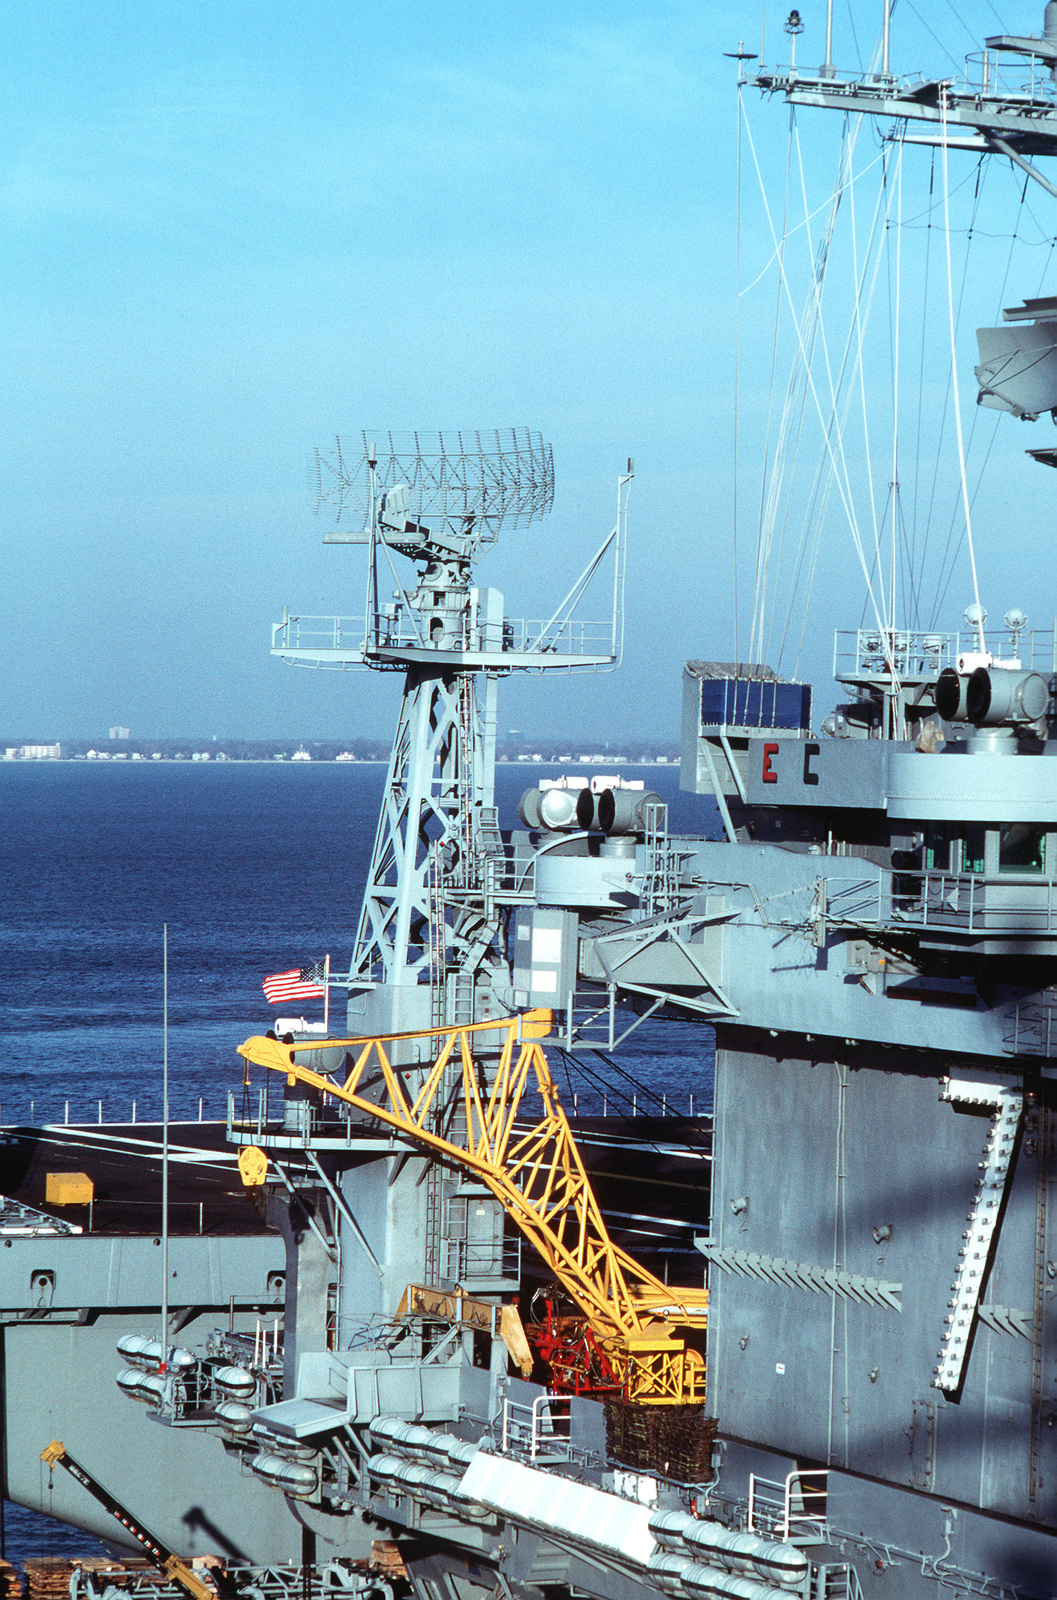 A view of the lattice mast behind the island of the nuclear-powered aircraft carrier USS THEODORE ROOSEVELT (CVN-71). The lattice mast supports the SPS-49 air search radar antenna